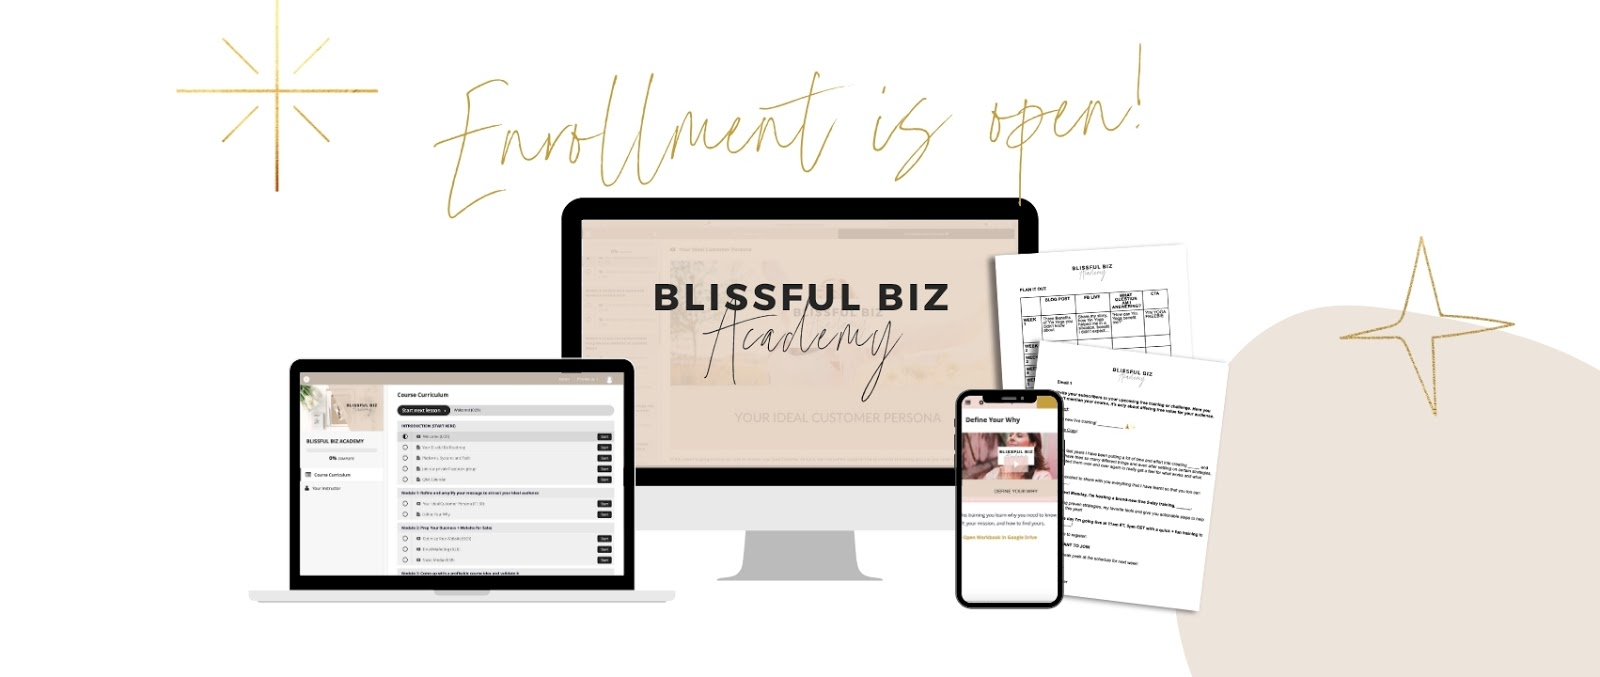 Blissful Biz Academy Doors Are Open